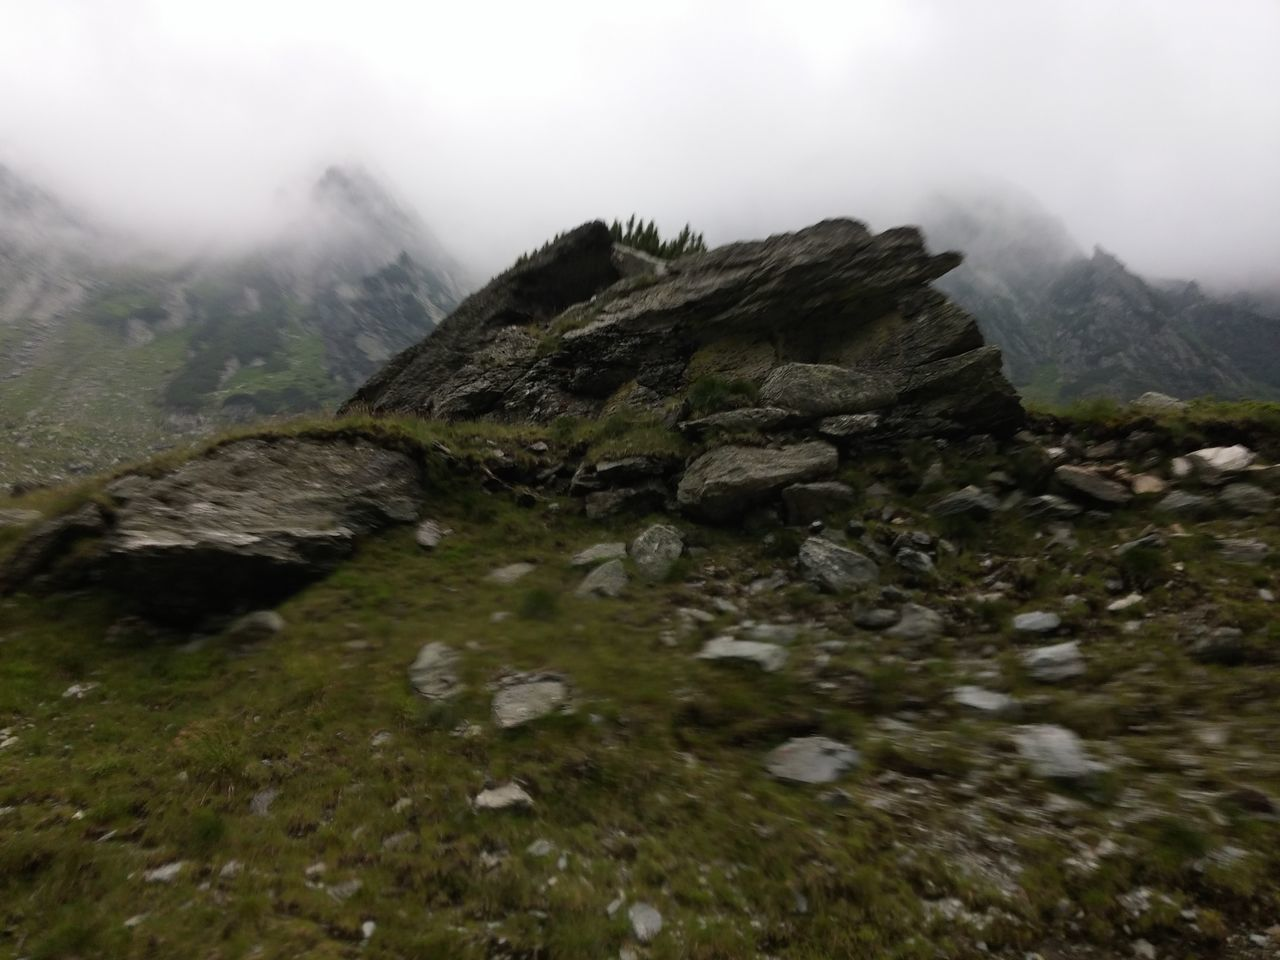 nature, mountain, beauty in nature, rock - object, fog, outdoors, day, no people, landscape, tranquility, scenics, water, tranquil scene, sky